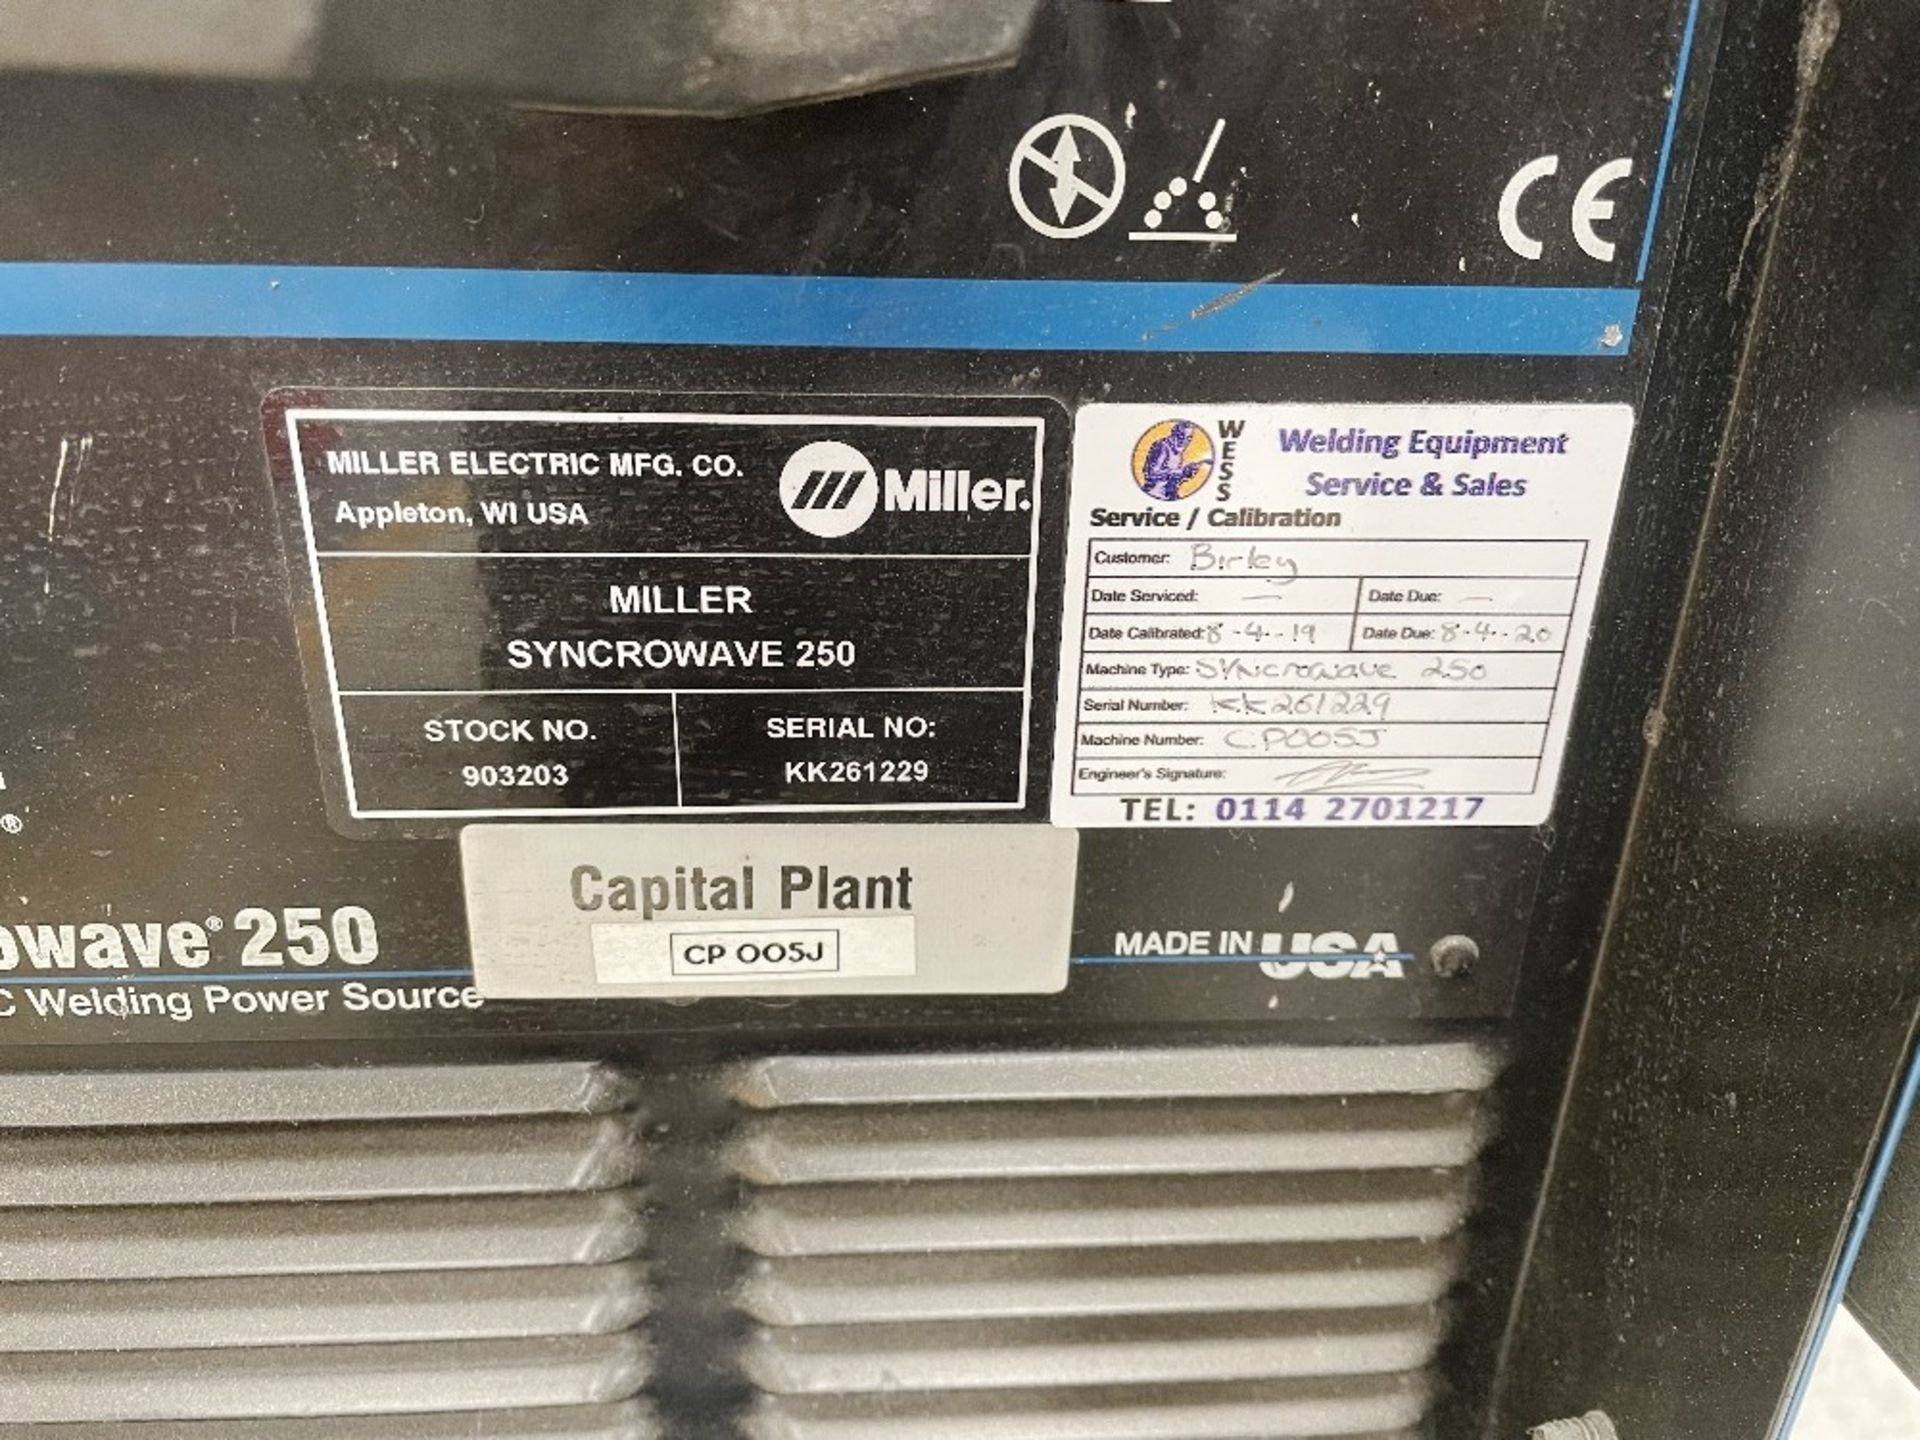 Miller Syncrowave 250 Tig Welder w/ TecArc XC1000 Water Cooler & Foot Pedal - Image 2 of 5